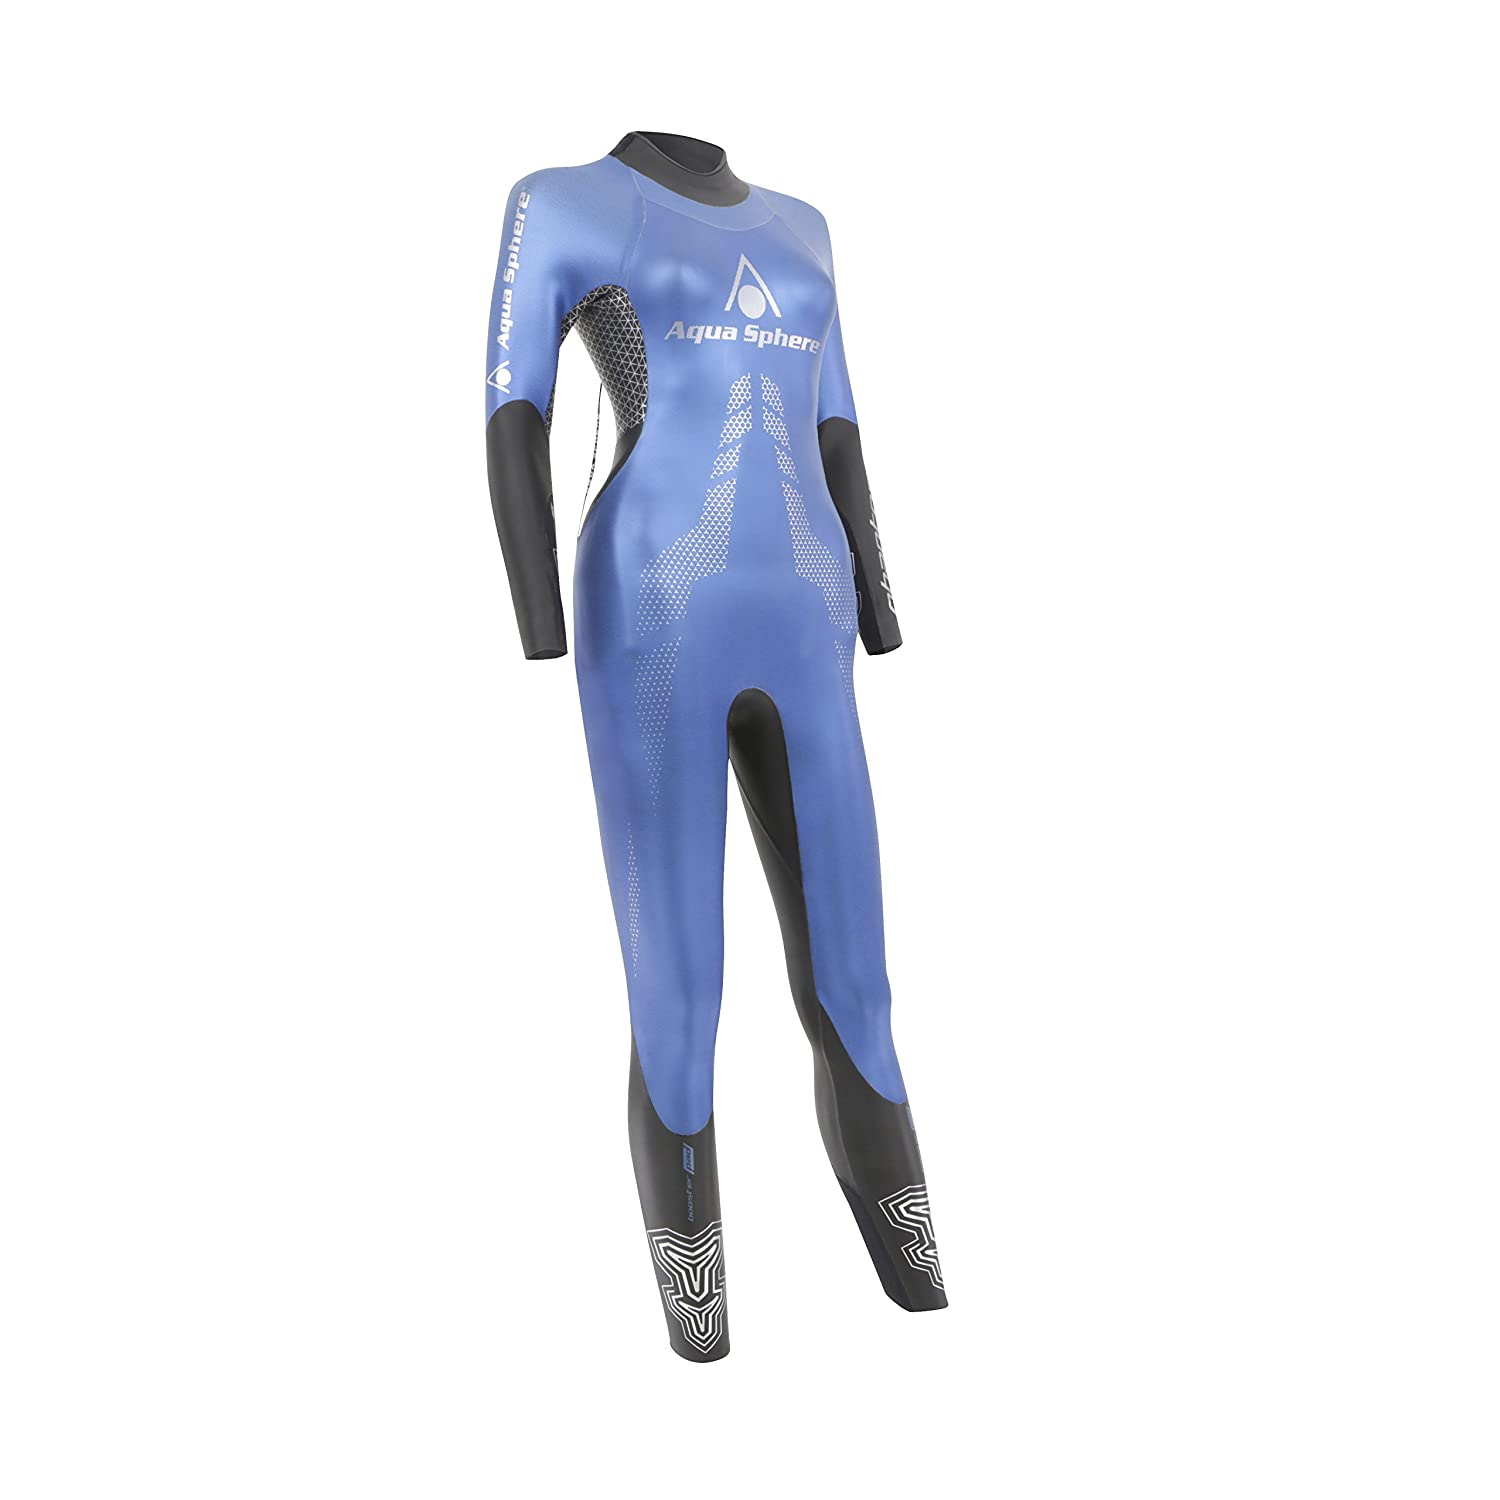 Aqua Sphere Damen-Phantom Damen-Phantom Damen-Phantom Triathlon Neoprenanzug B01H5CVY3W Neoprenanzüge Attraktive Mode 923c23